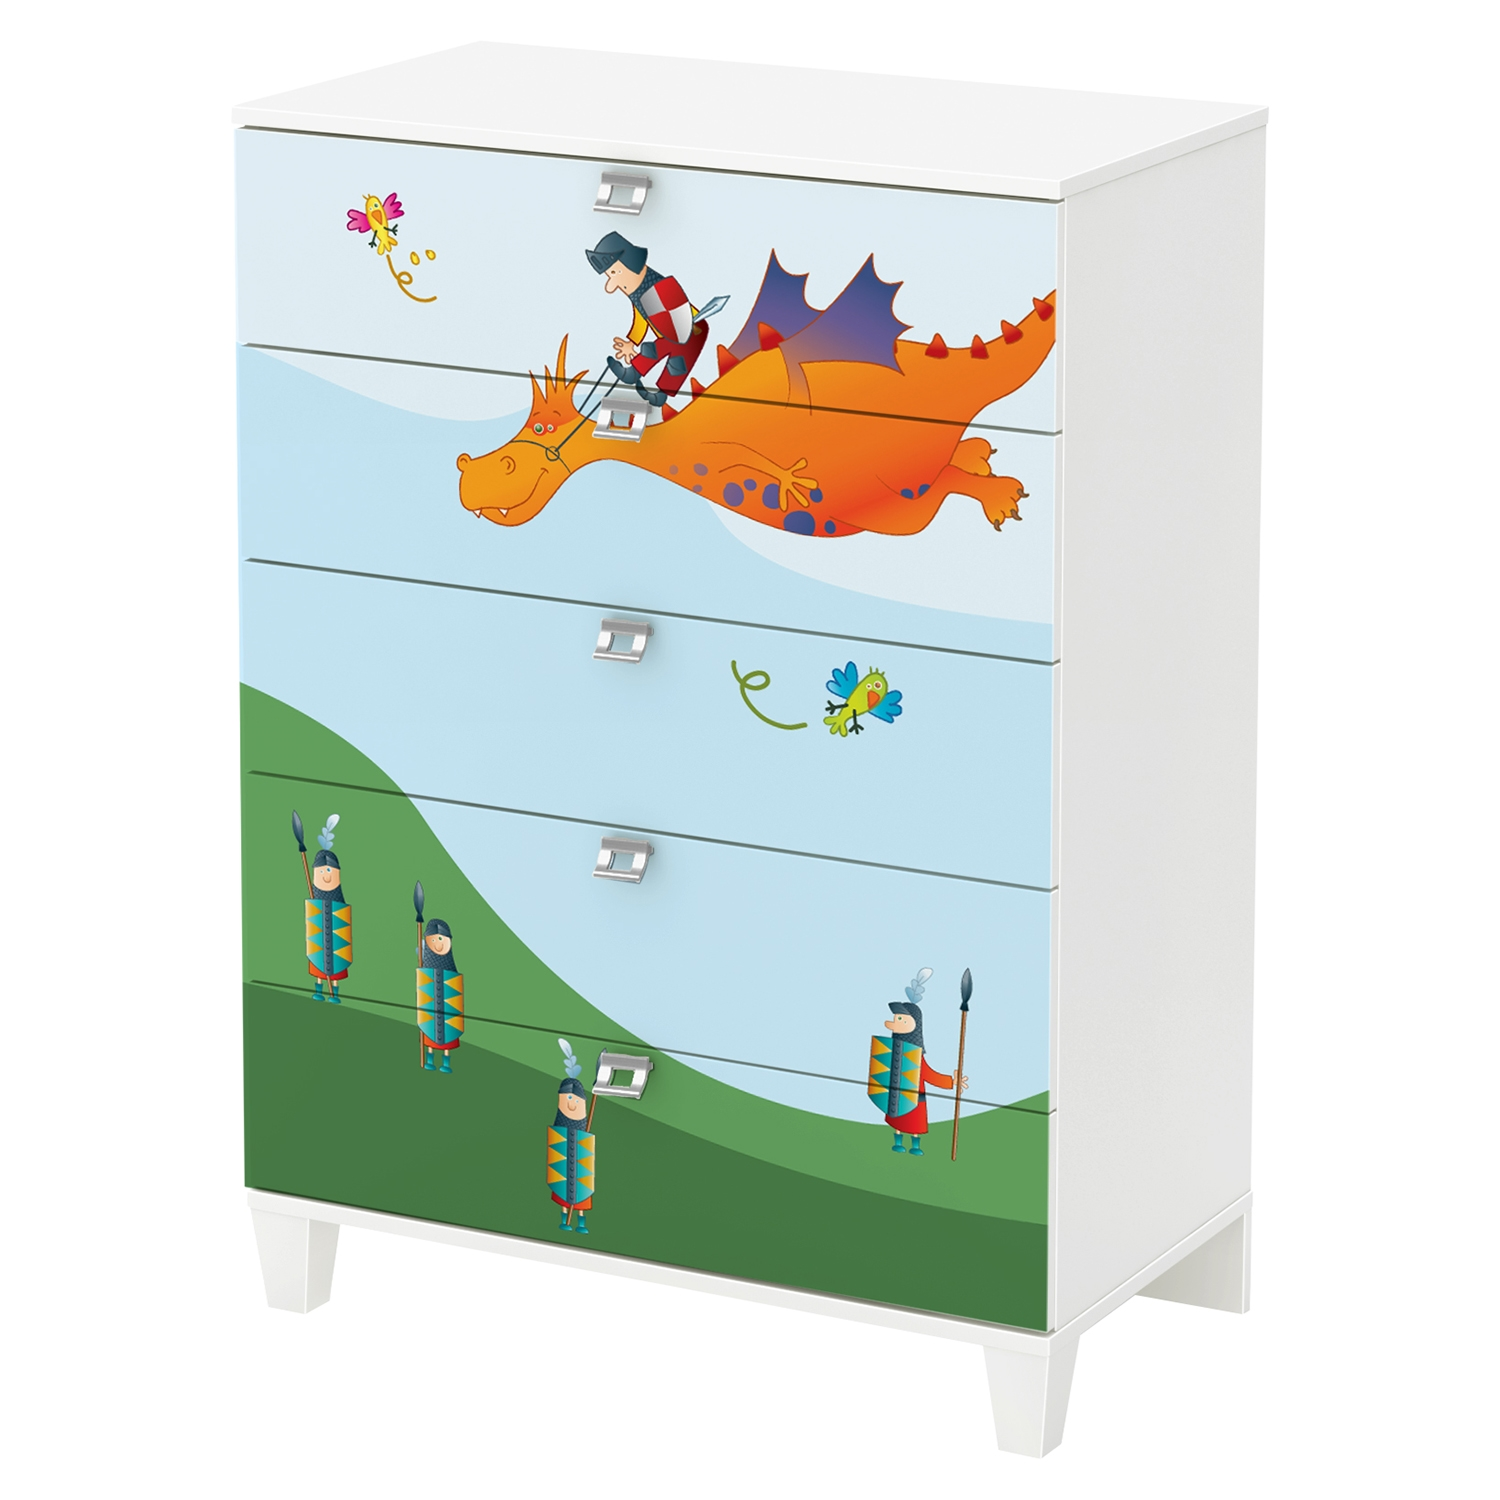 Andy Chest with Dragon Decals - Pure White, 5 Drawers